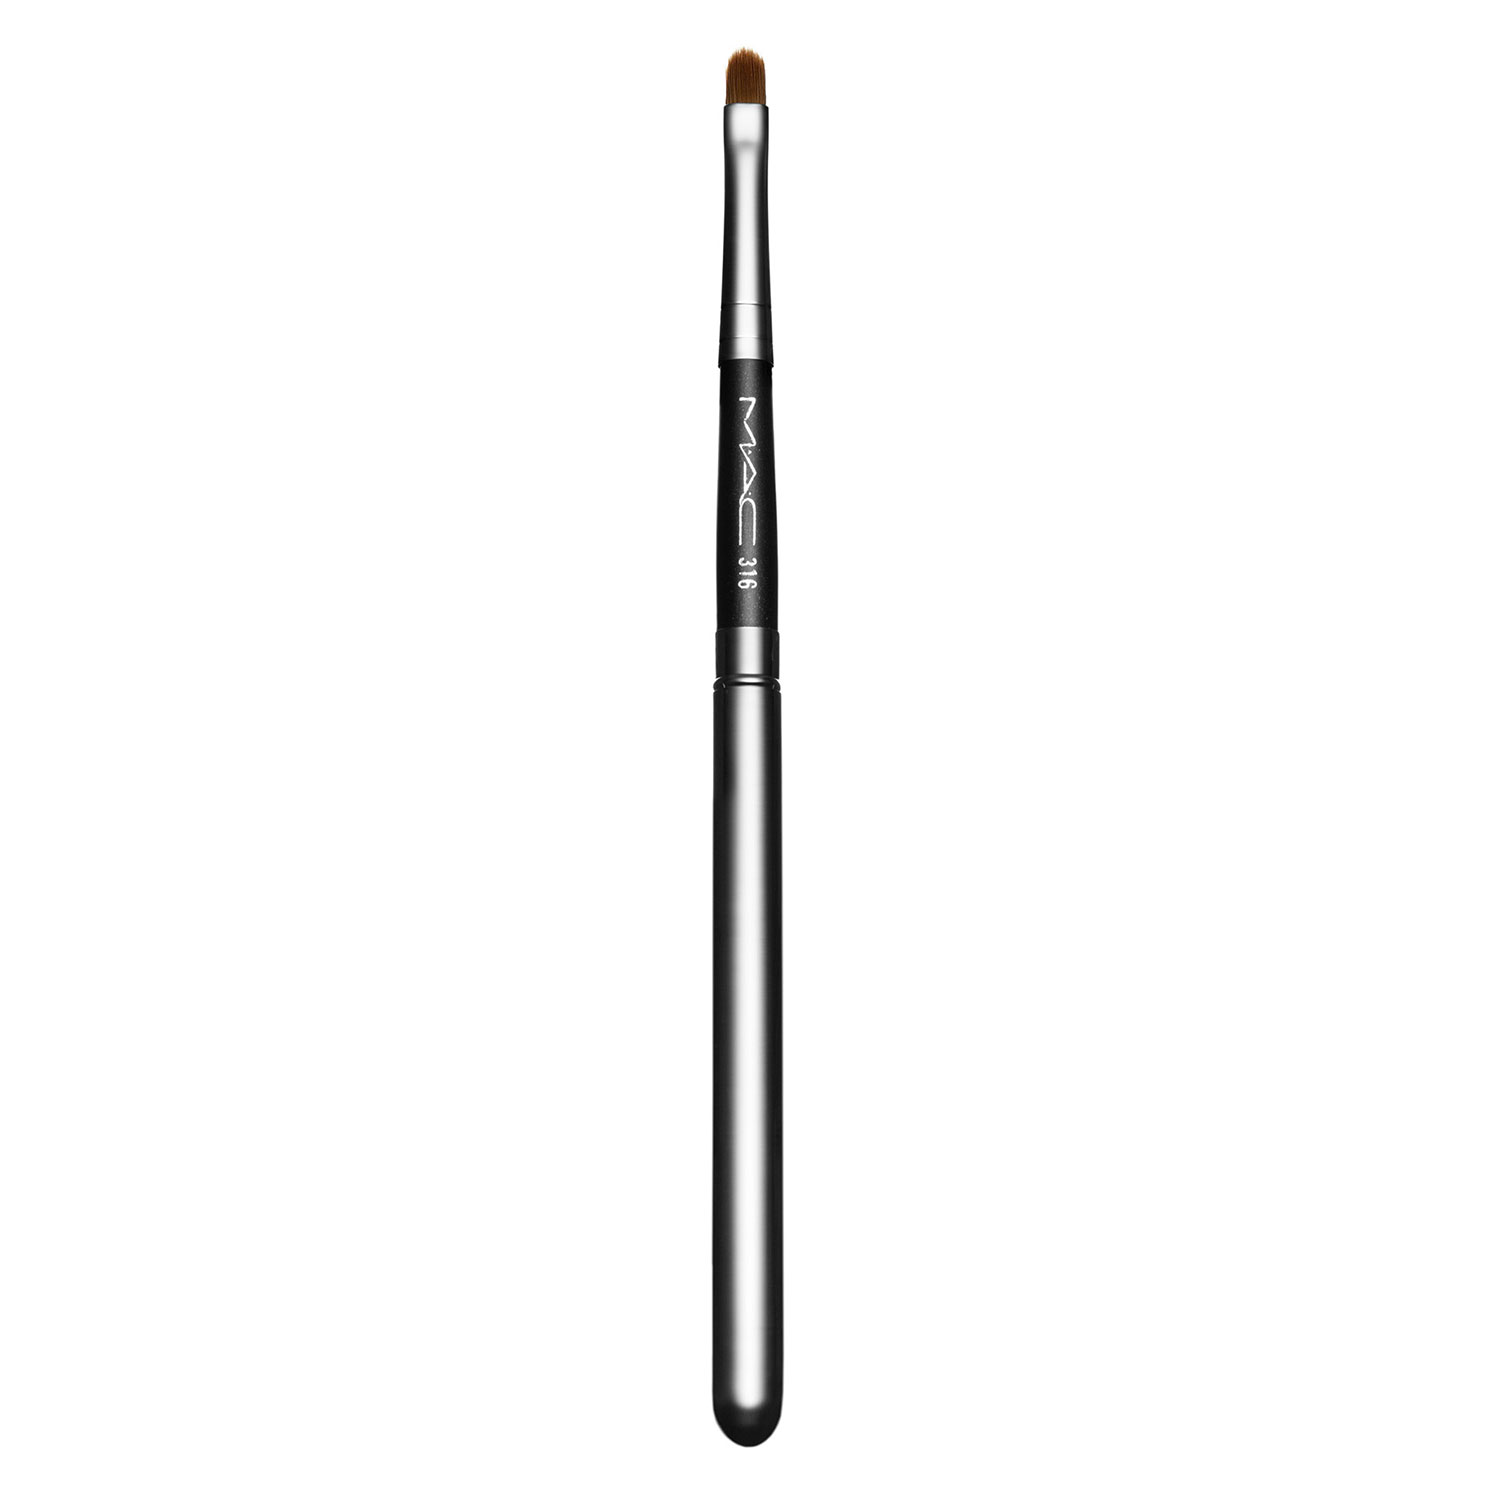 M·A·C Tools - Lip Brush Covered 316